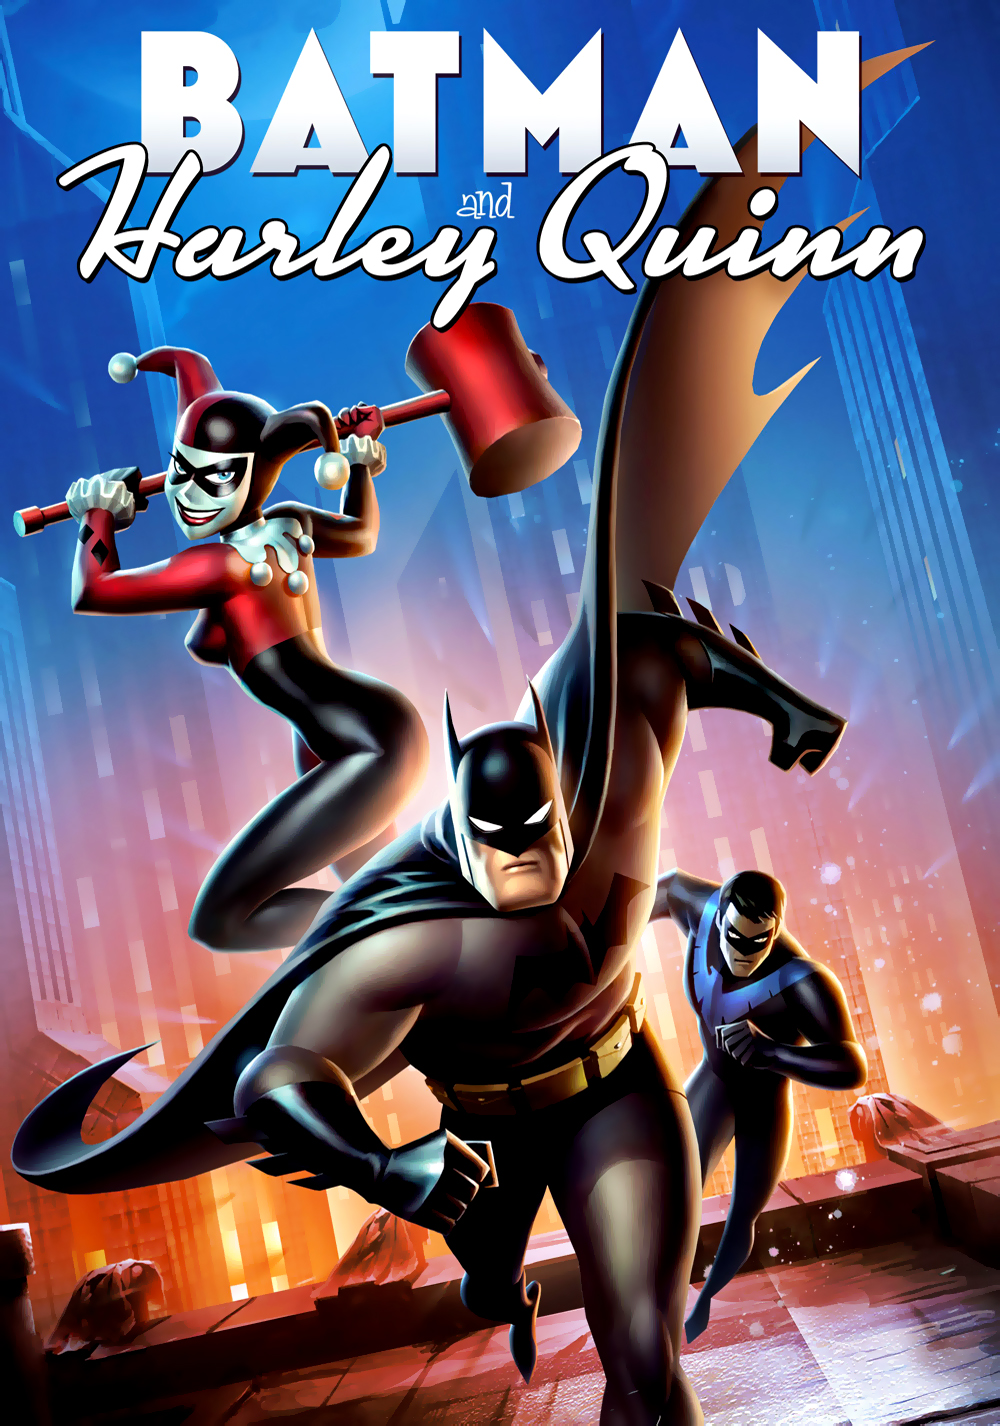 Batman harley quinn comic pdf